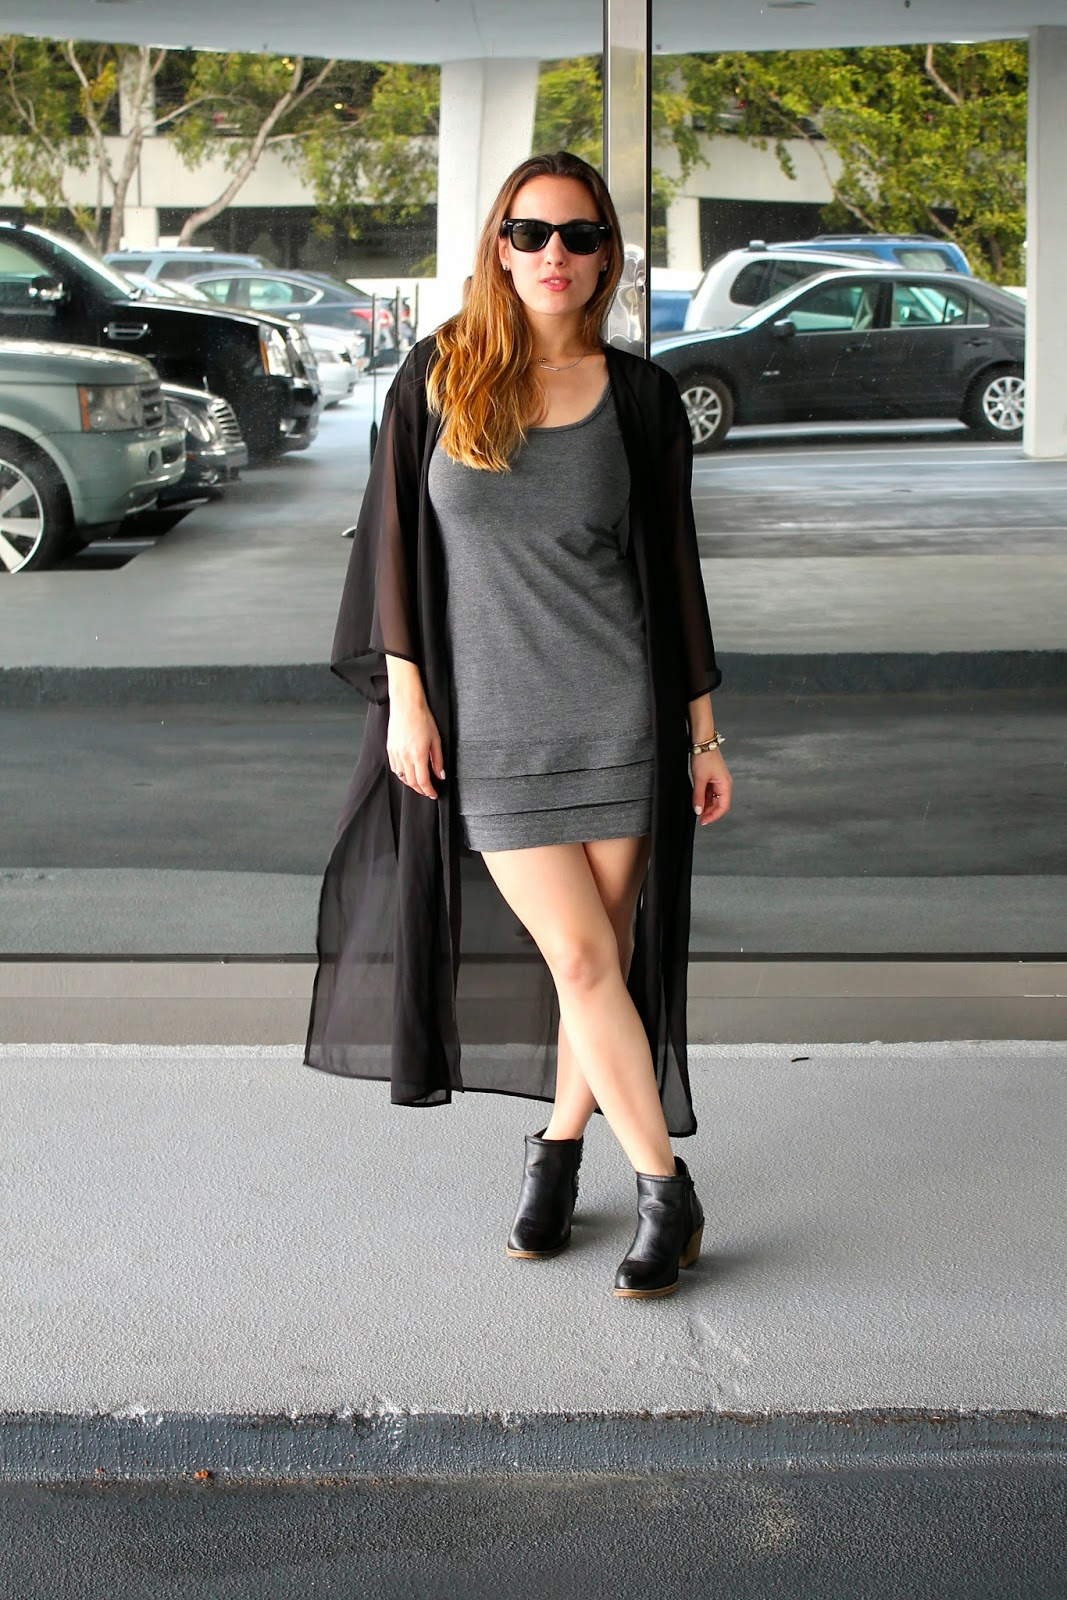 Nordstrom, H&M, edgy, prep, fashion blog, Miami fashion, Miami, southern, what i wore, ootd, Target, Ray-Ban, street style